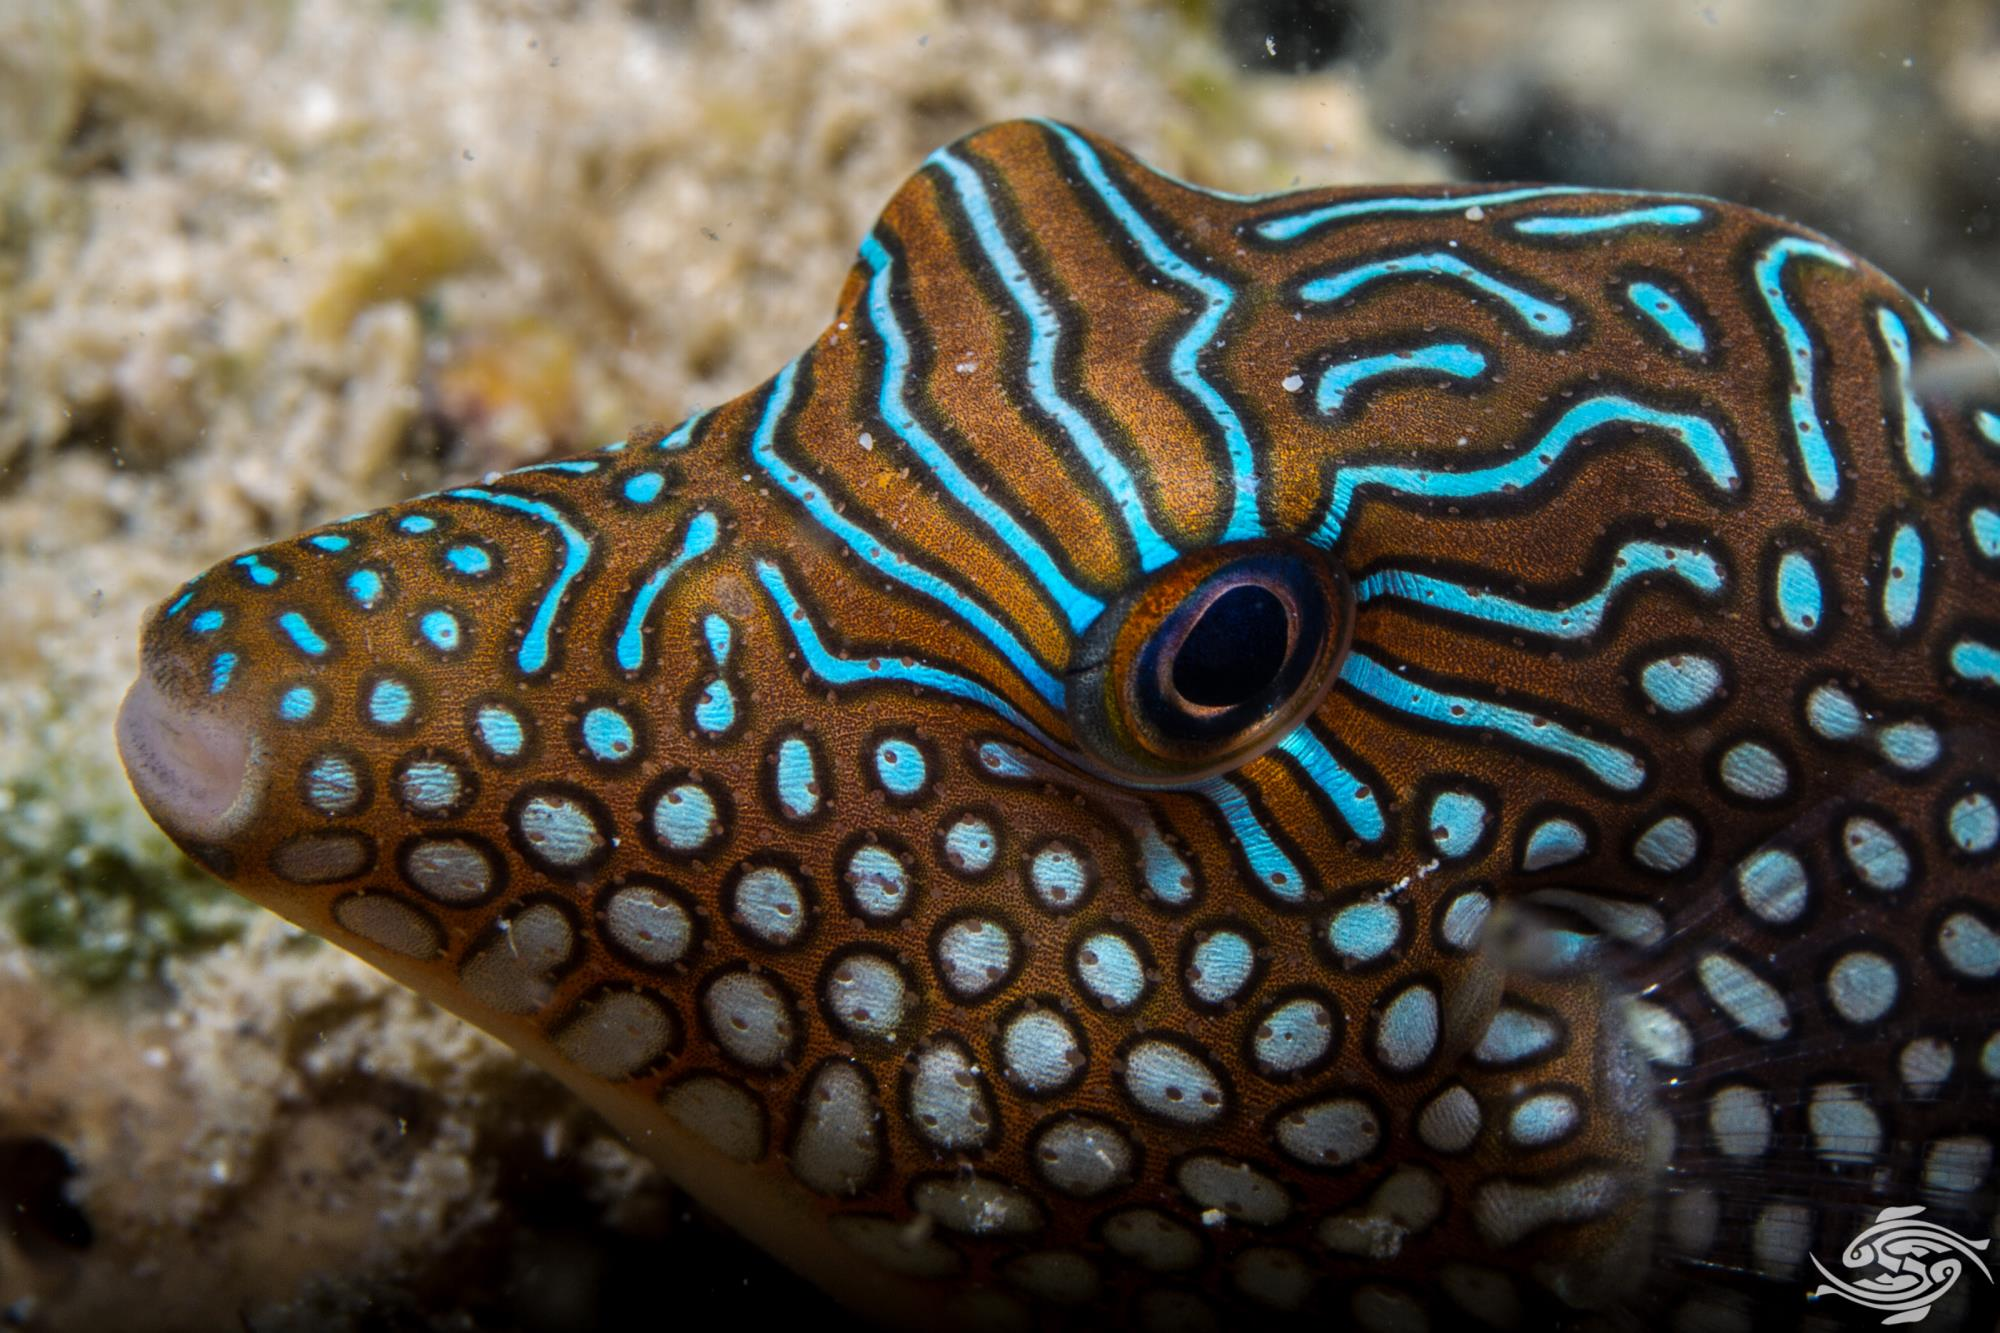 False eye toby, Canthigaster solandri is also known as the ocellated toby, blue spotted toby, jewel pufferfish, solanders toby and spotted sharpnose puffer.